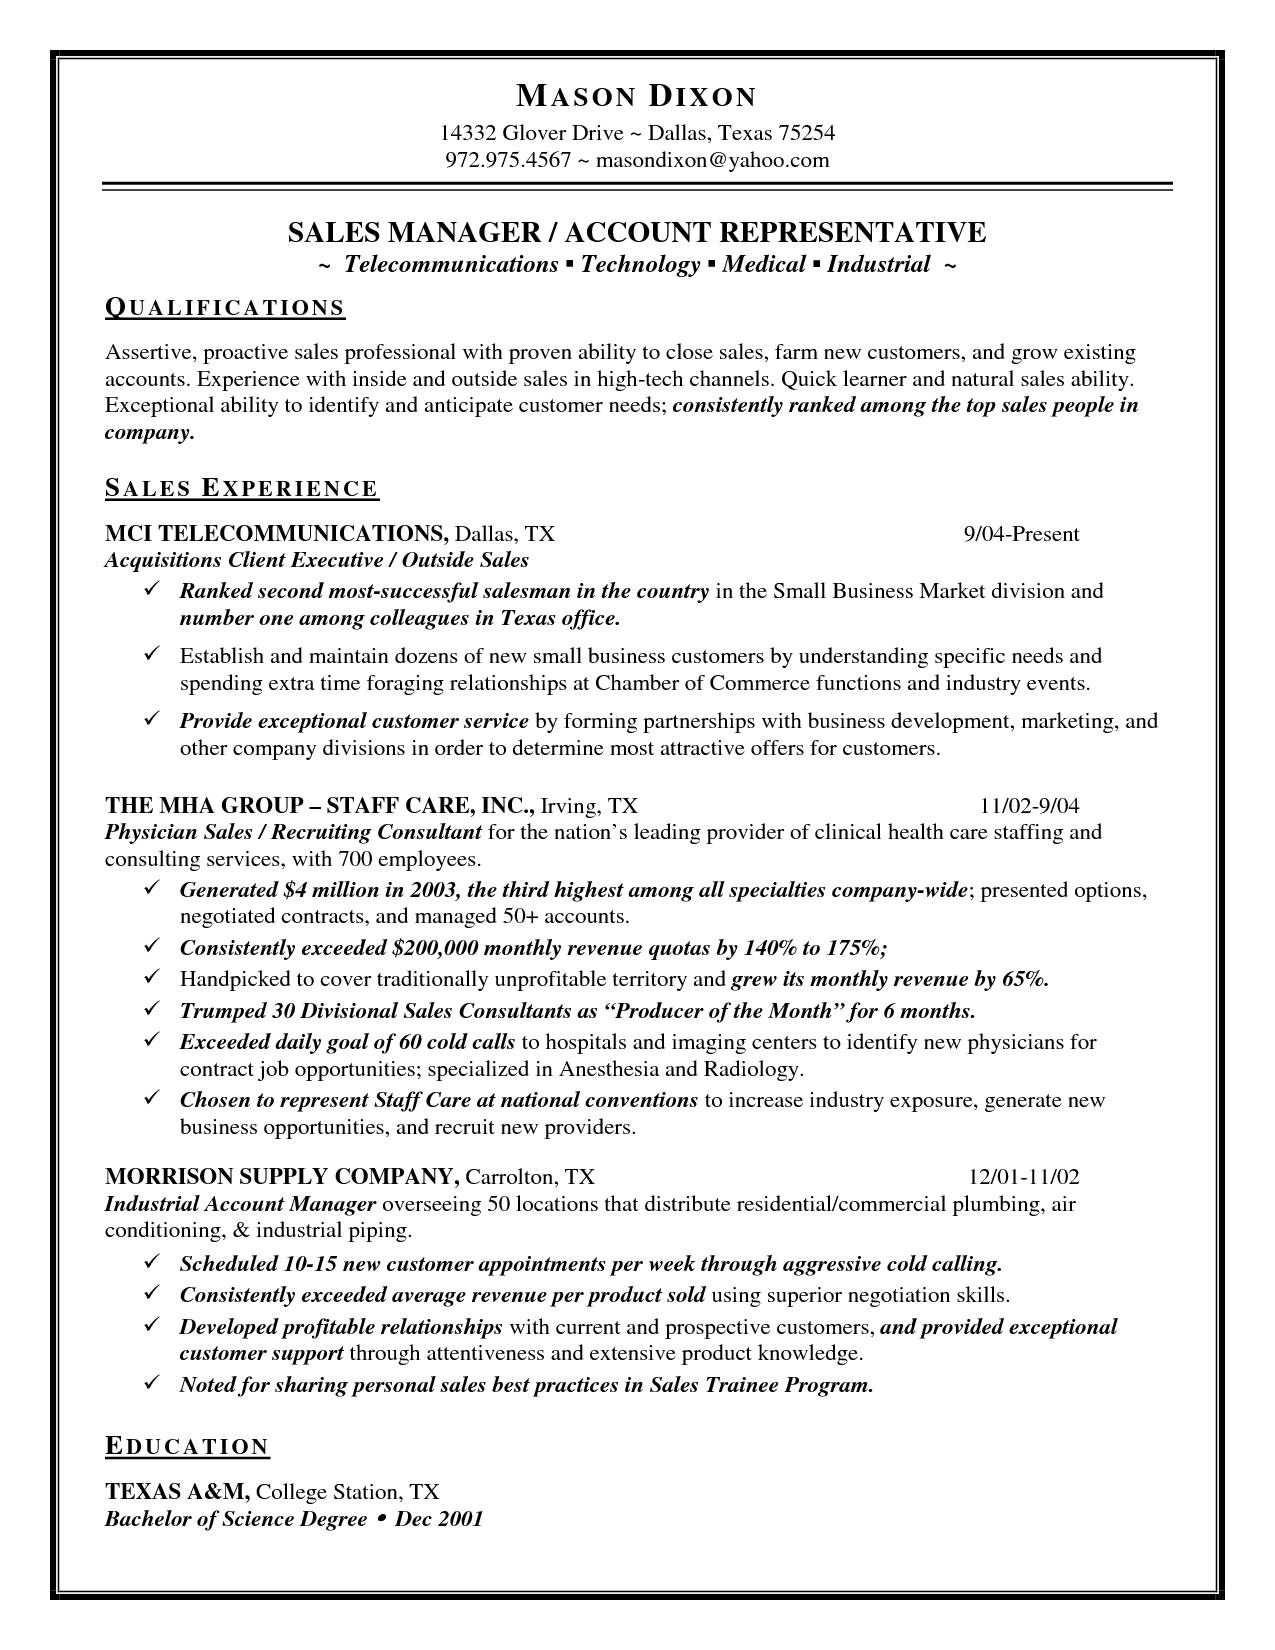 Quick Learner Resume Quick Learner Resume  Inside Sales Resume Sample Mason Dixon 14332